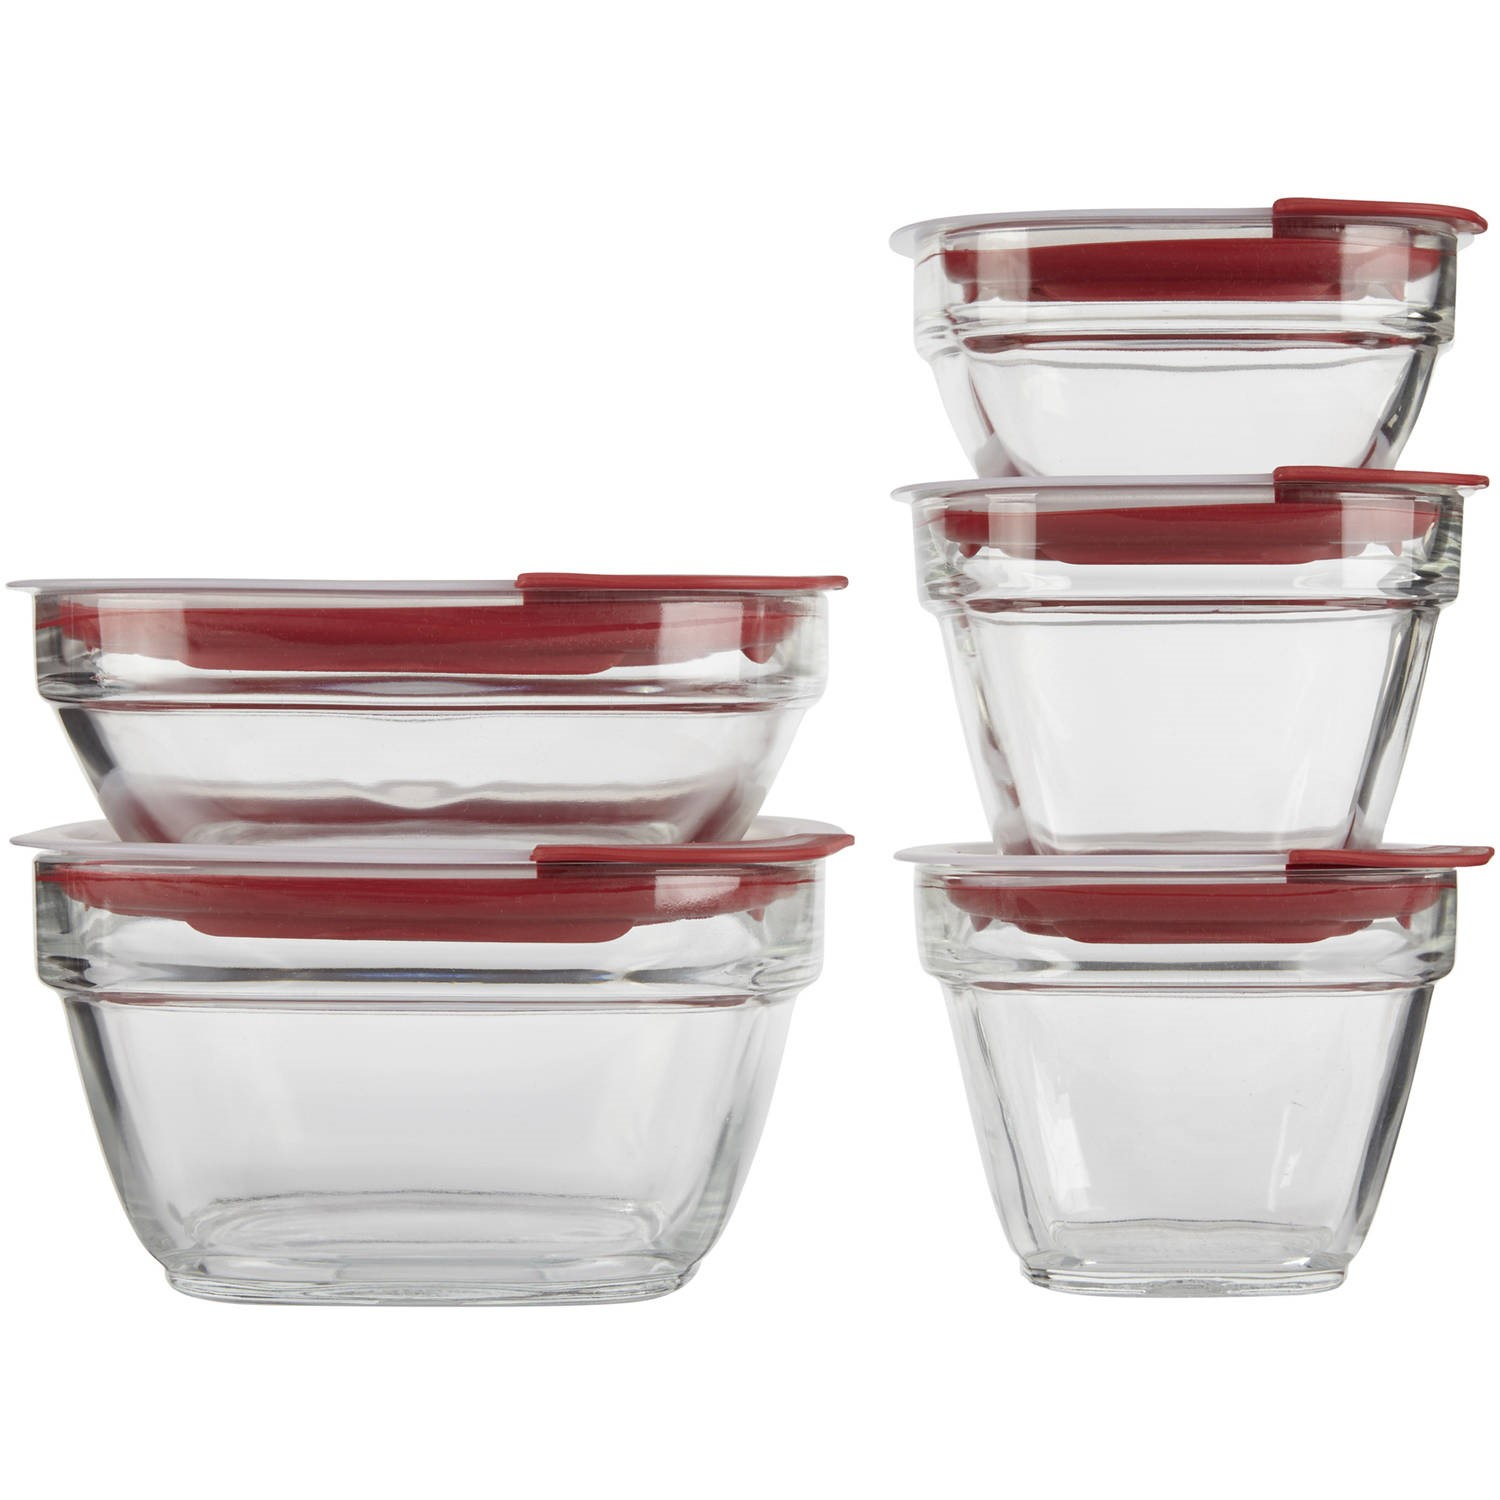 Rubbermaid Glass Food Storage Containers with Easy Find Lids Red